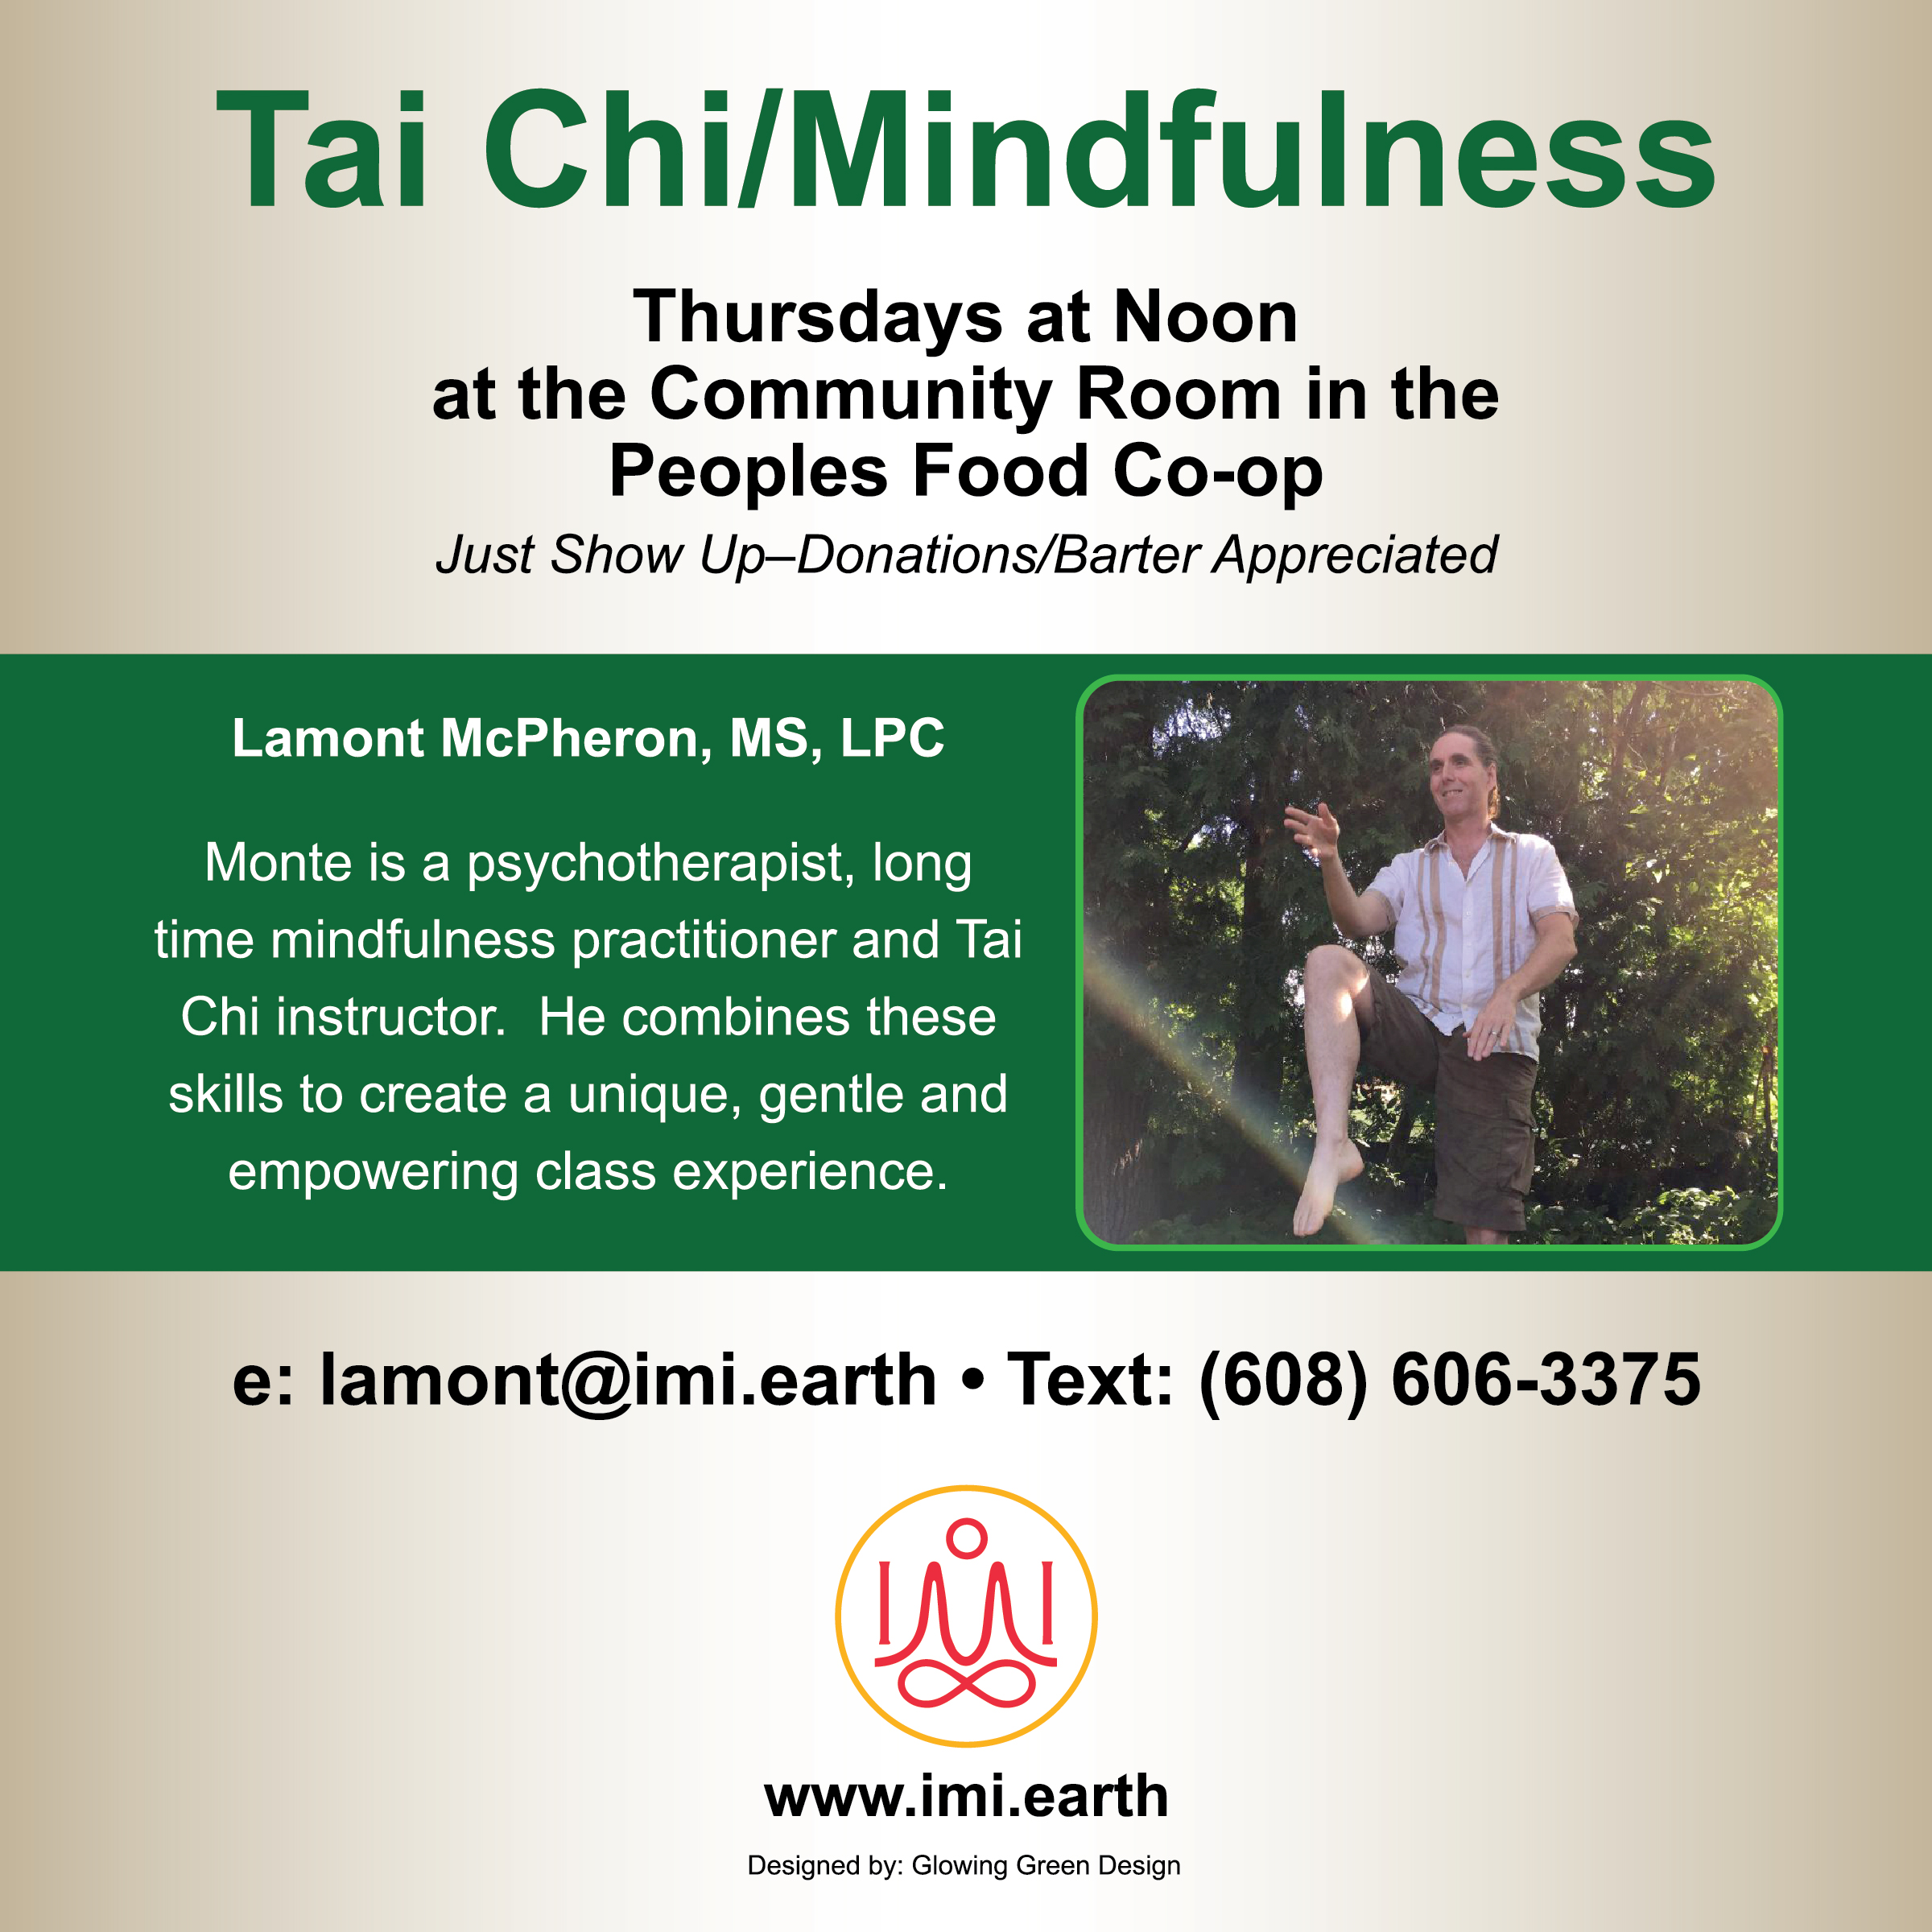 Tai Chi Classes - Lamont currently has a weekly class at People's Food Coop in the Community Room, available by donation for the La Crosse, Wisconsin community!